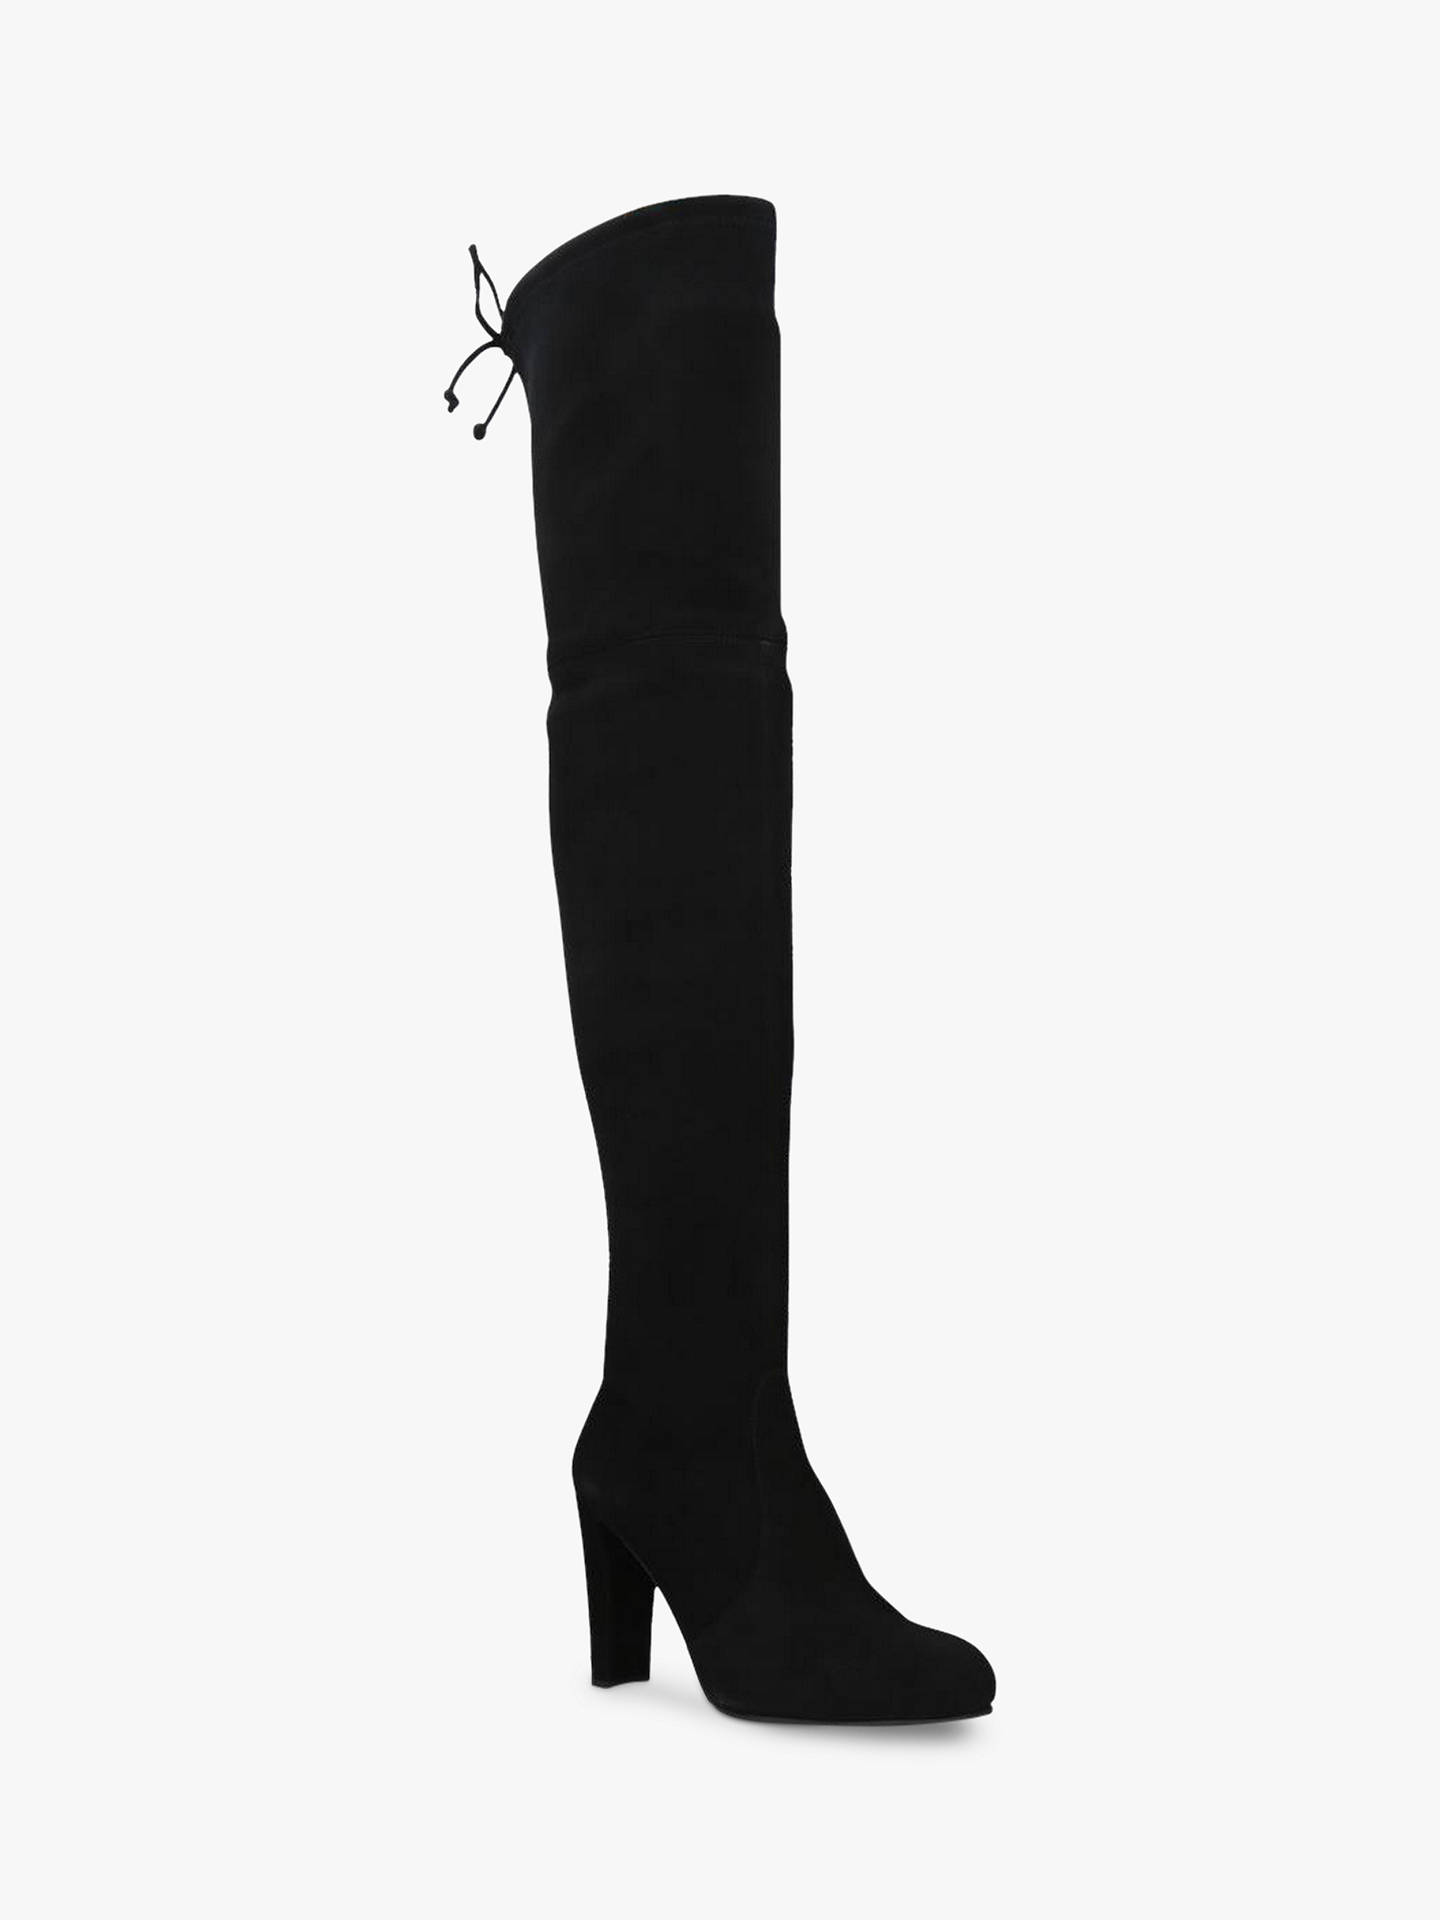 b6398b3289c Stuart Weitzman Highland Over the Knee Boots, Black Suede